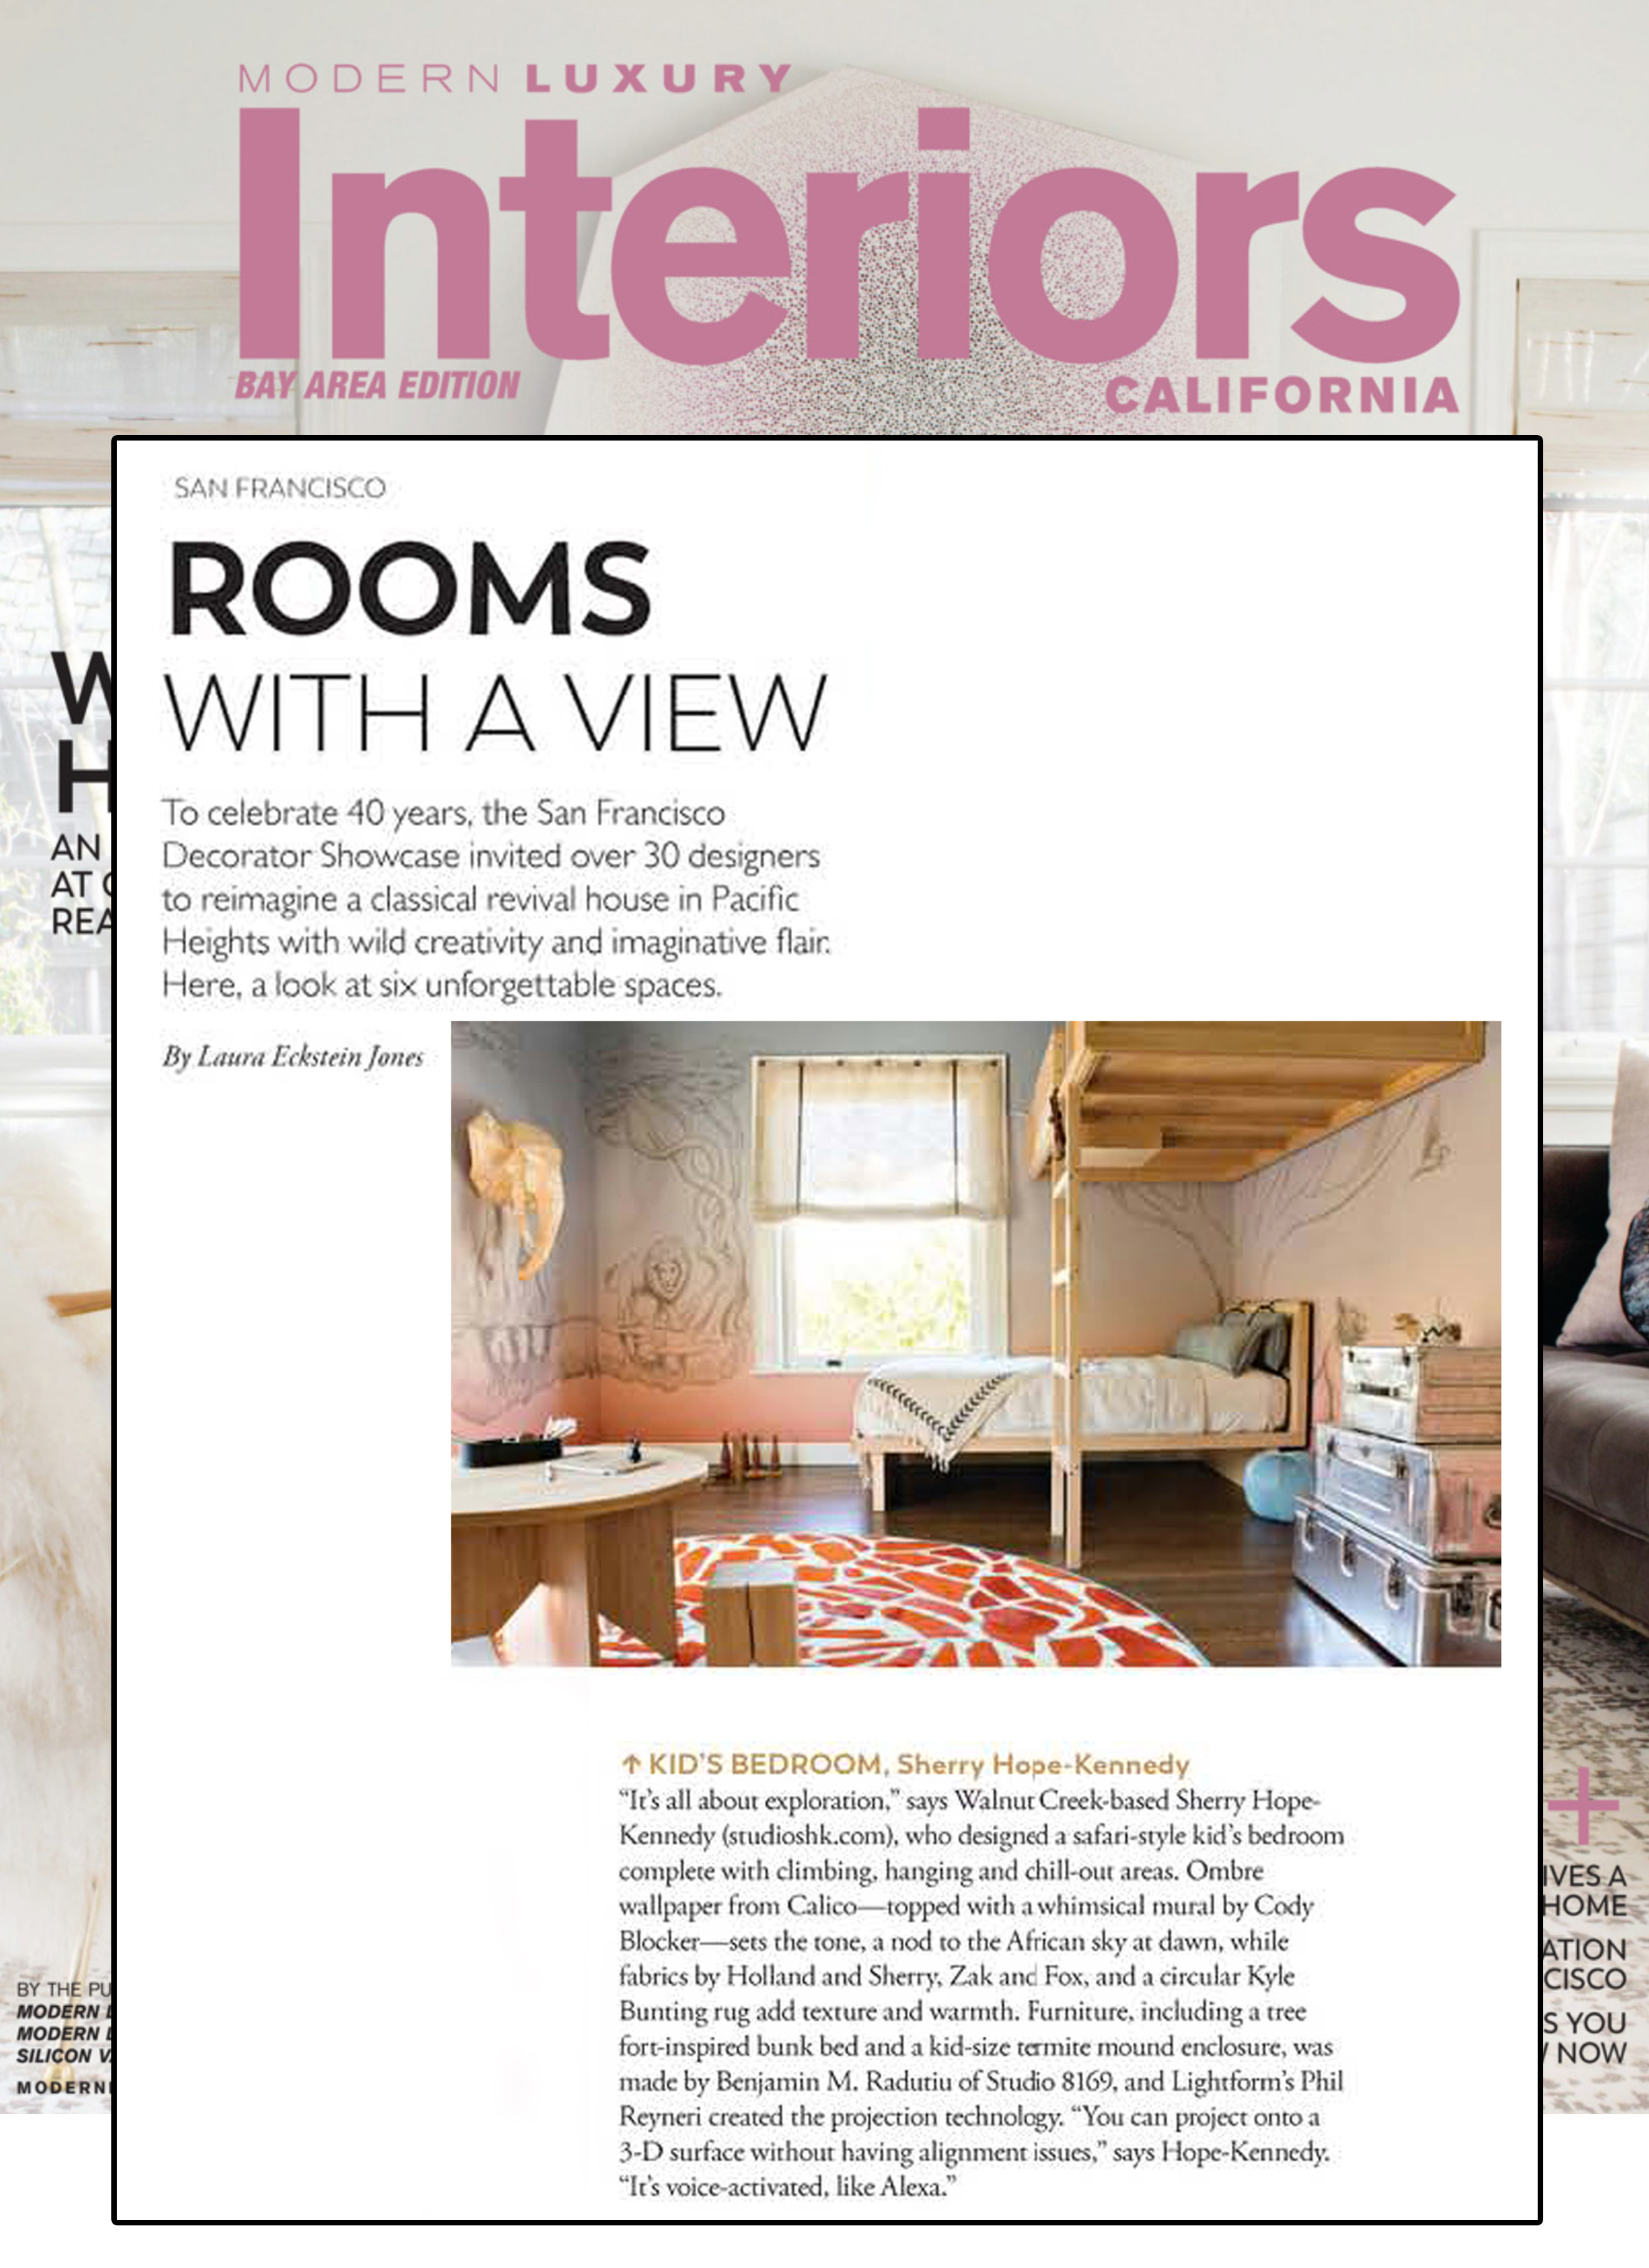 Interiors California - Modern Luxury Interiors California, in their latest Bay Area Edition, includes our kid's bedroom as one of the